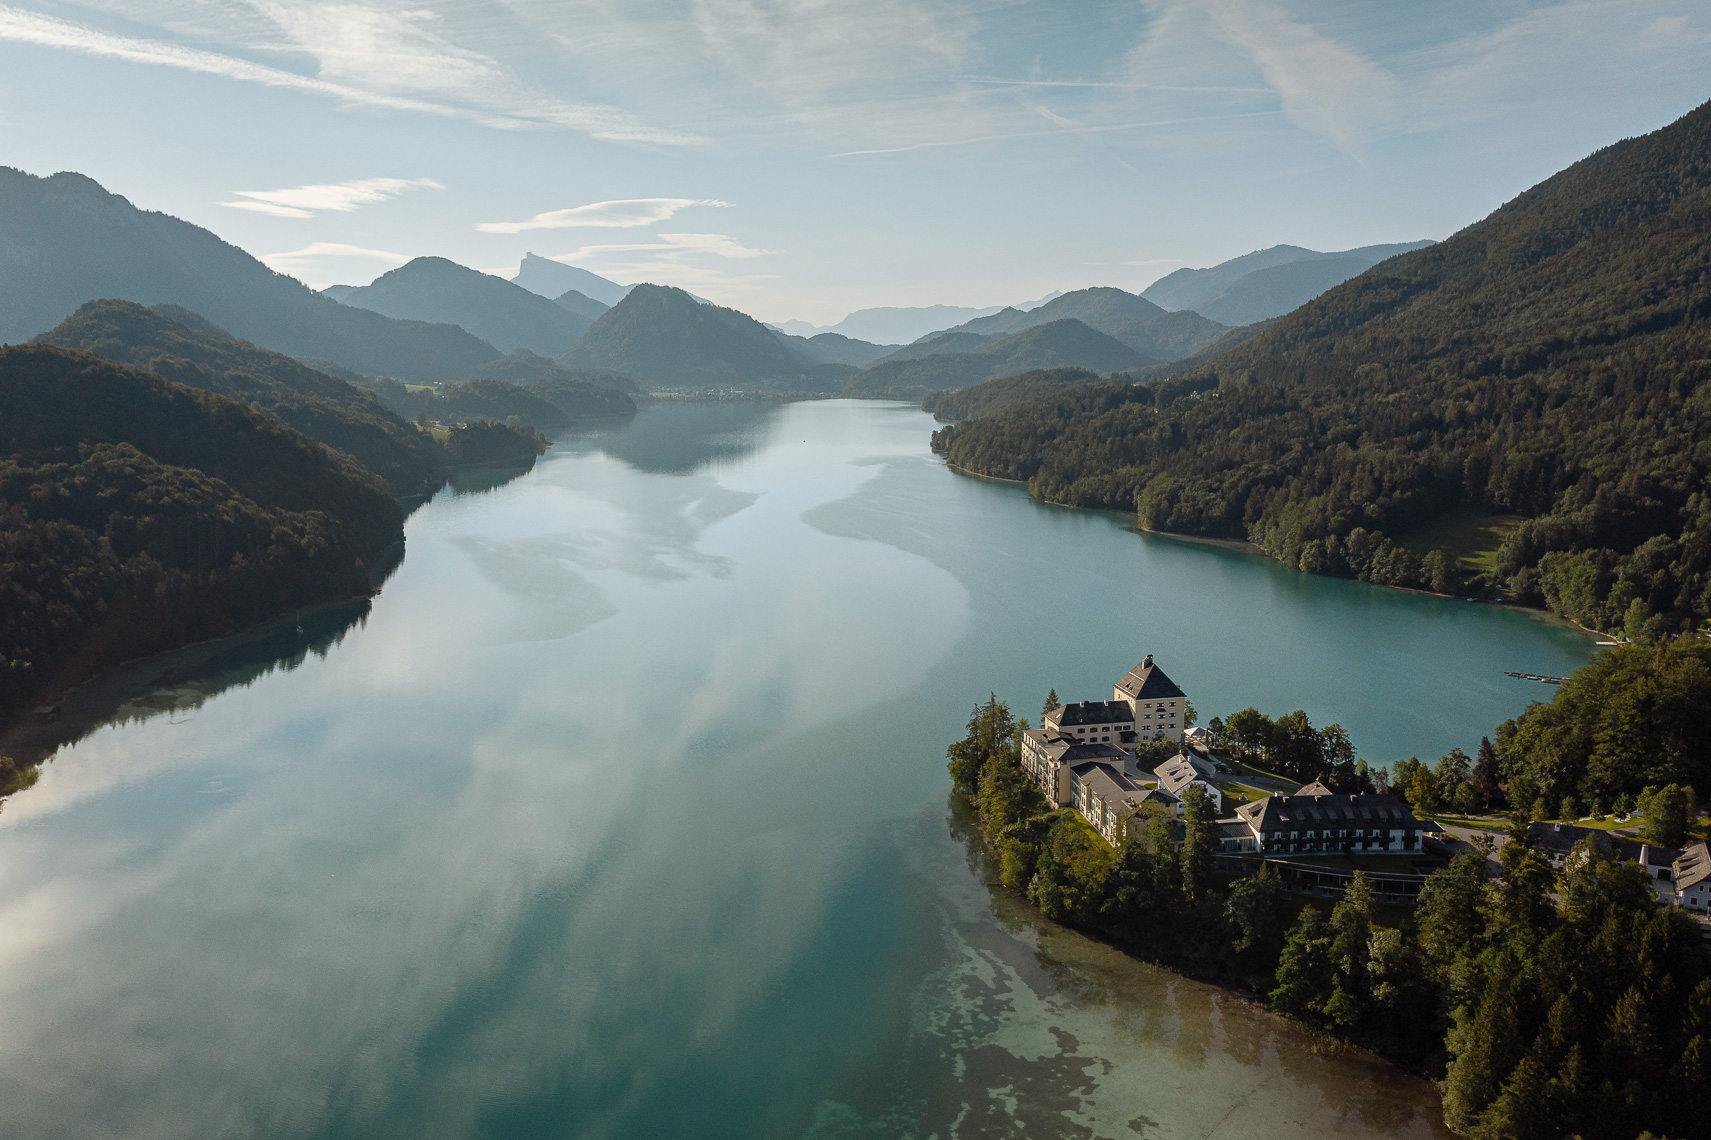 richard-schabetsberger-schloss-fuschl-drone-aerial-photography-003